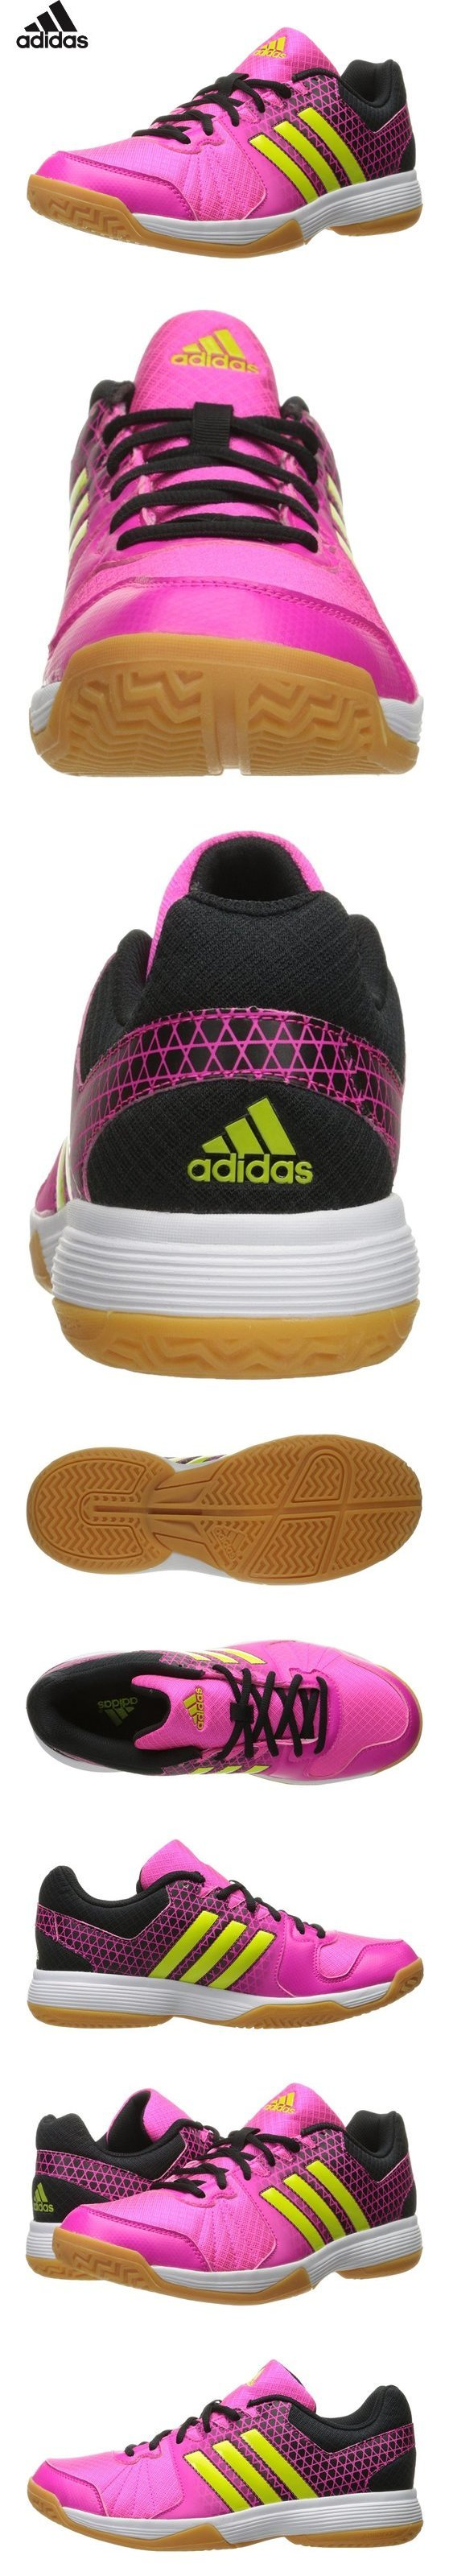 Adidas Performance Women S Ligra 4w Volleyball Shoe Shock Pink Semi Solar Slime Black 10 M Us Volleyball Shoes Women Shoes